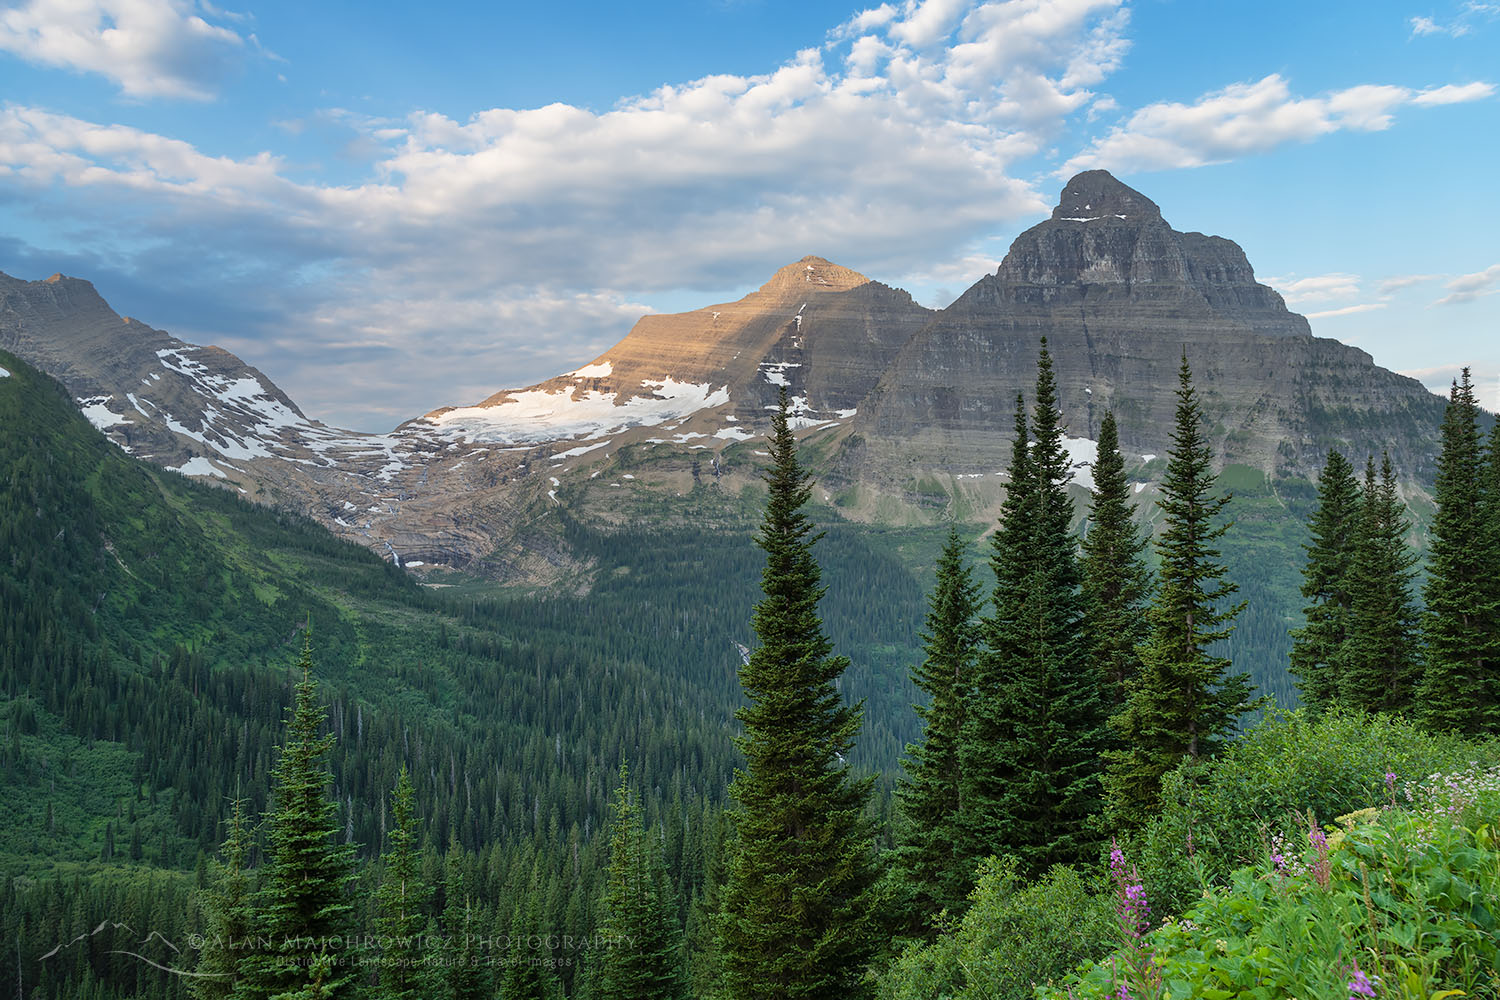 Kintla and Kinnerly Peaks Glacier National Park Montana